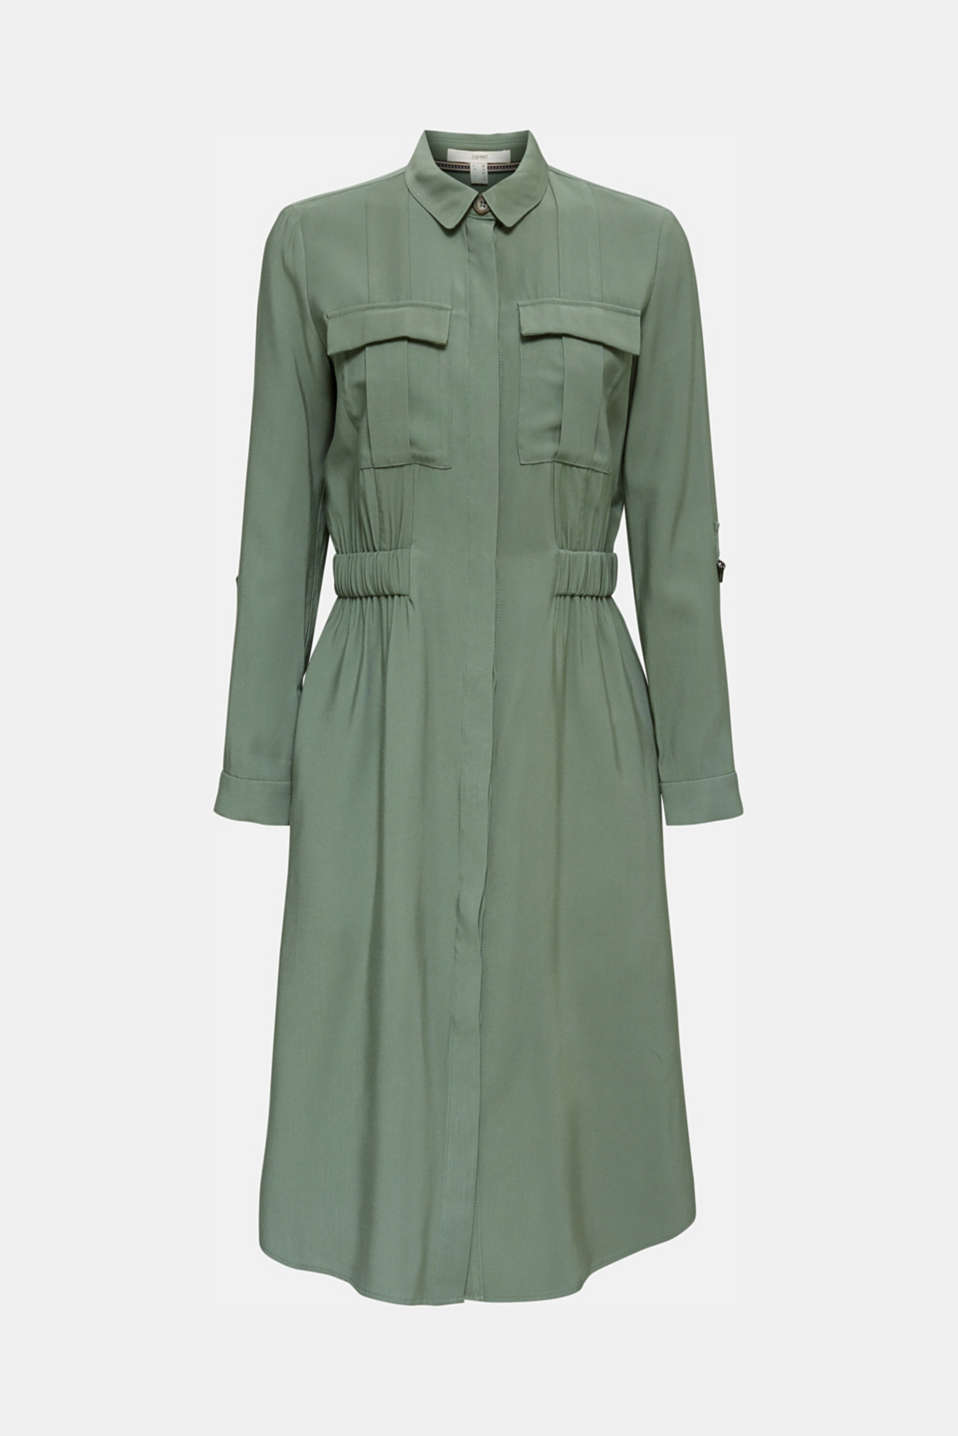 Shirt dress in a utility style, KHAKI GREEN, detail image number 5